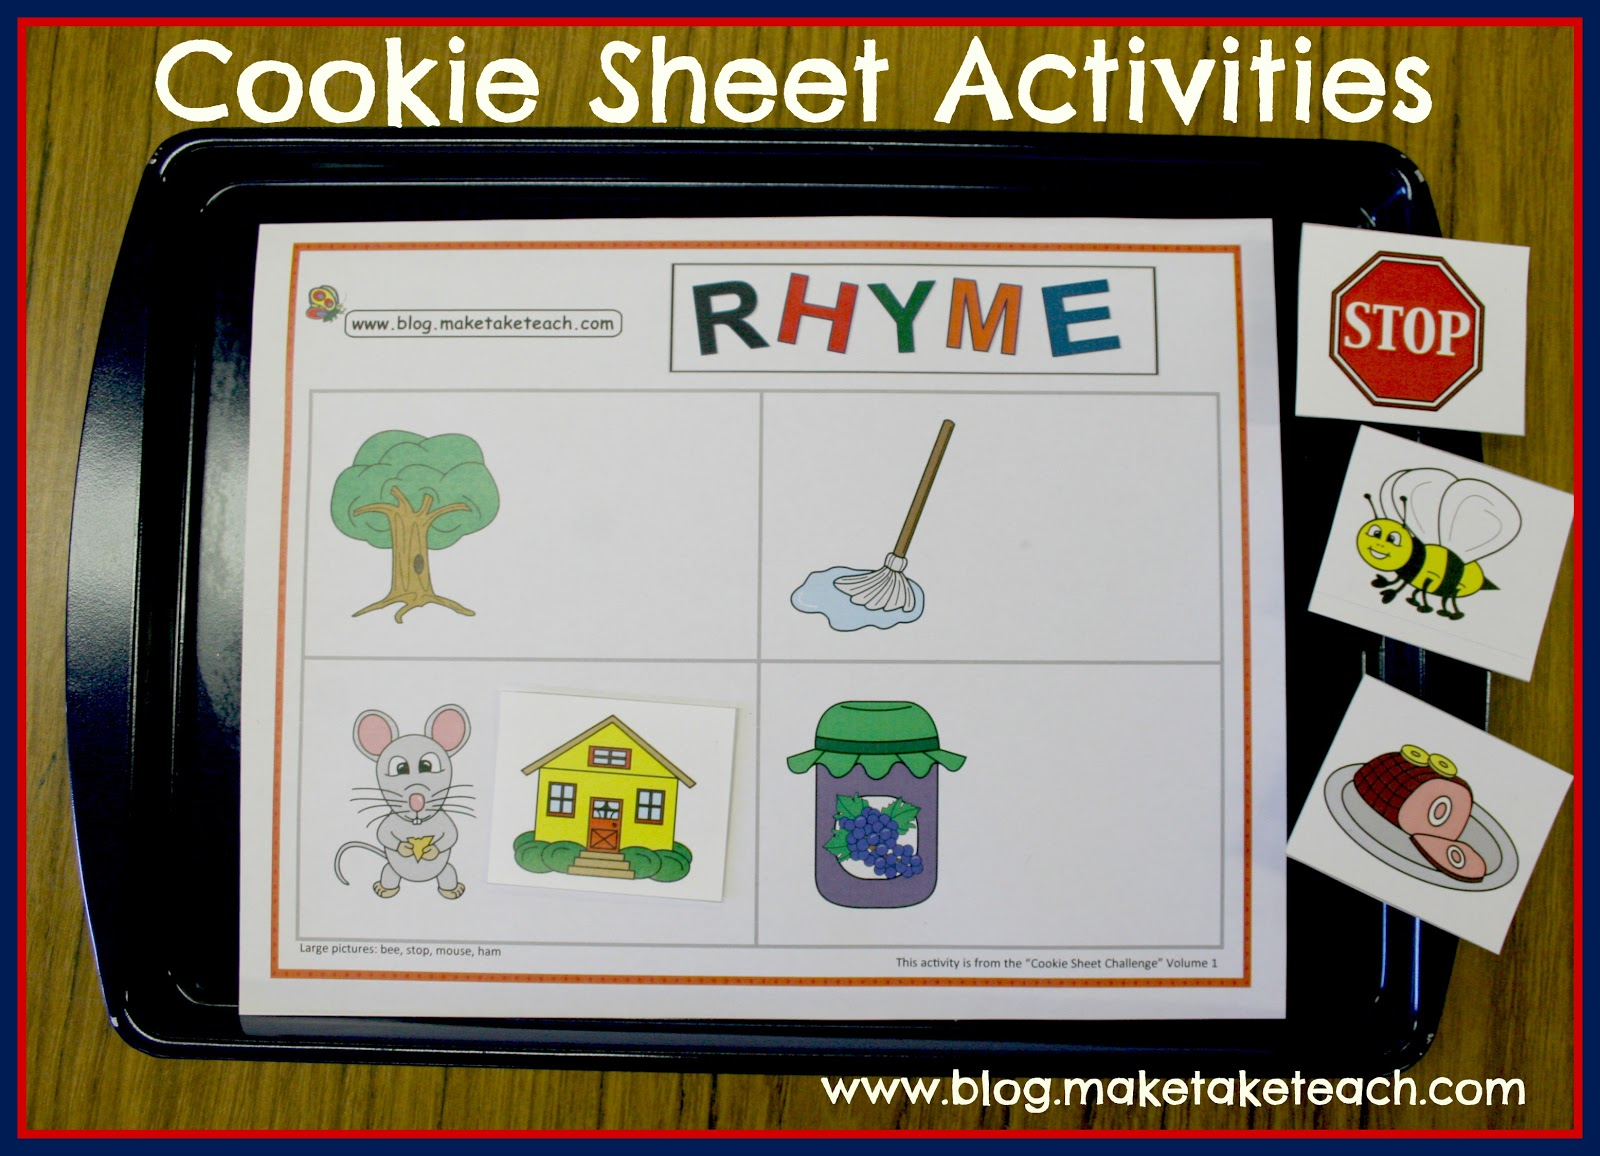 Cookie Sheet Activity Rhyme